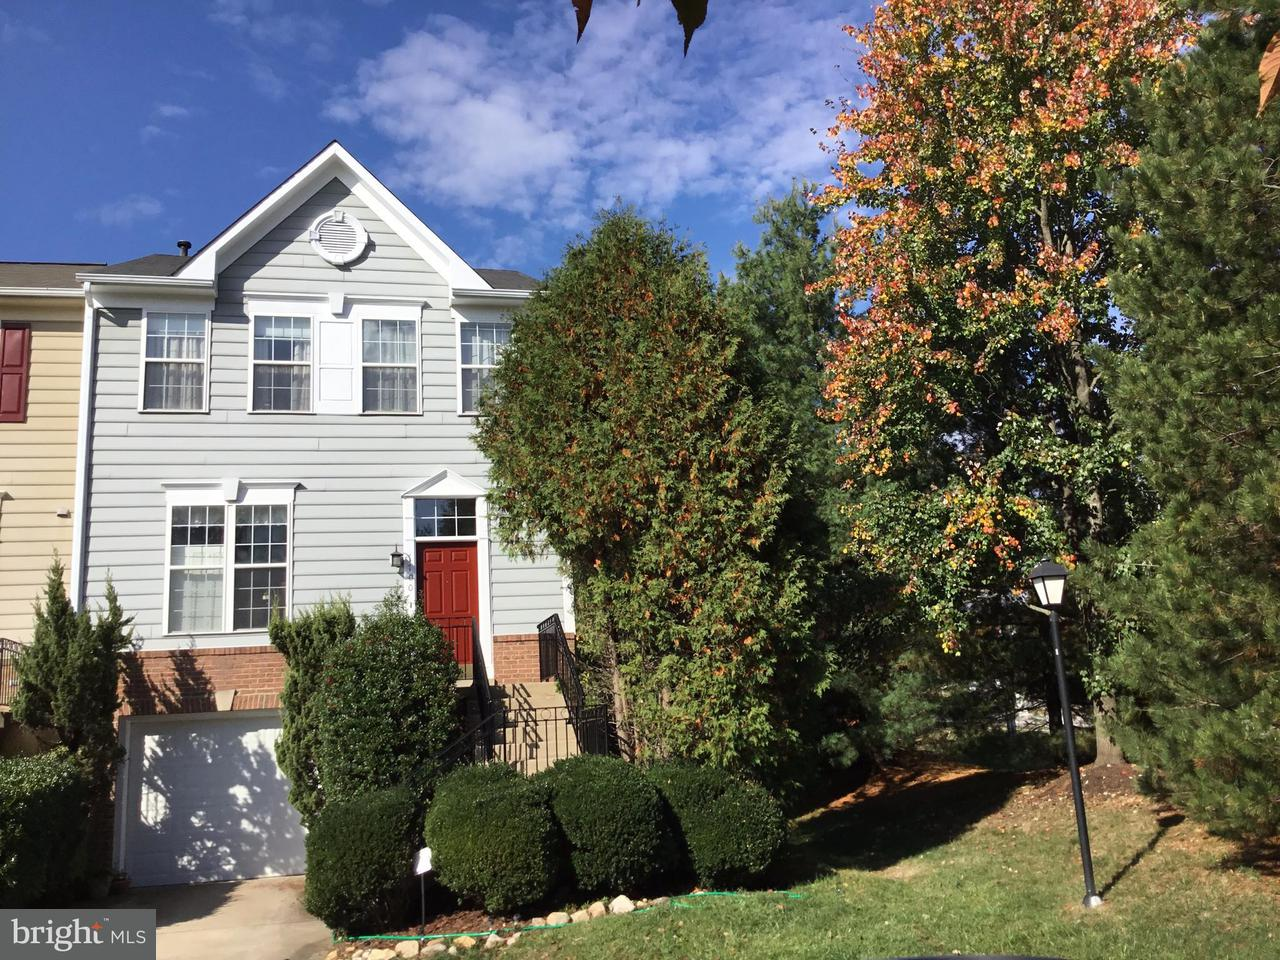 Townhouse for Sale at 7700 HAVENBROOK WAY 7700 HAVENBROOK WAY Springfield, Virginia 22153 United States